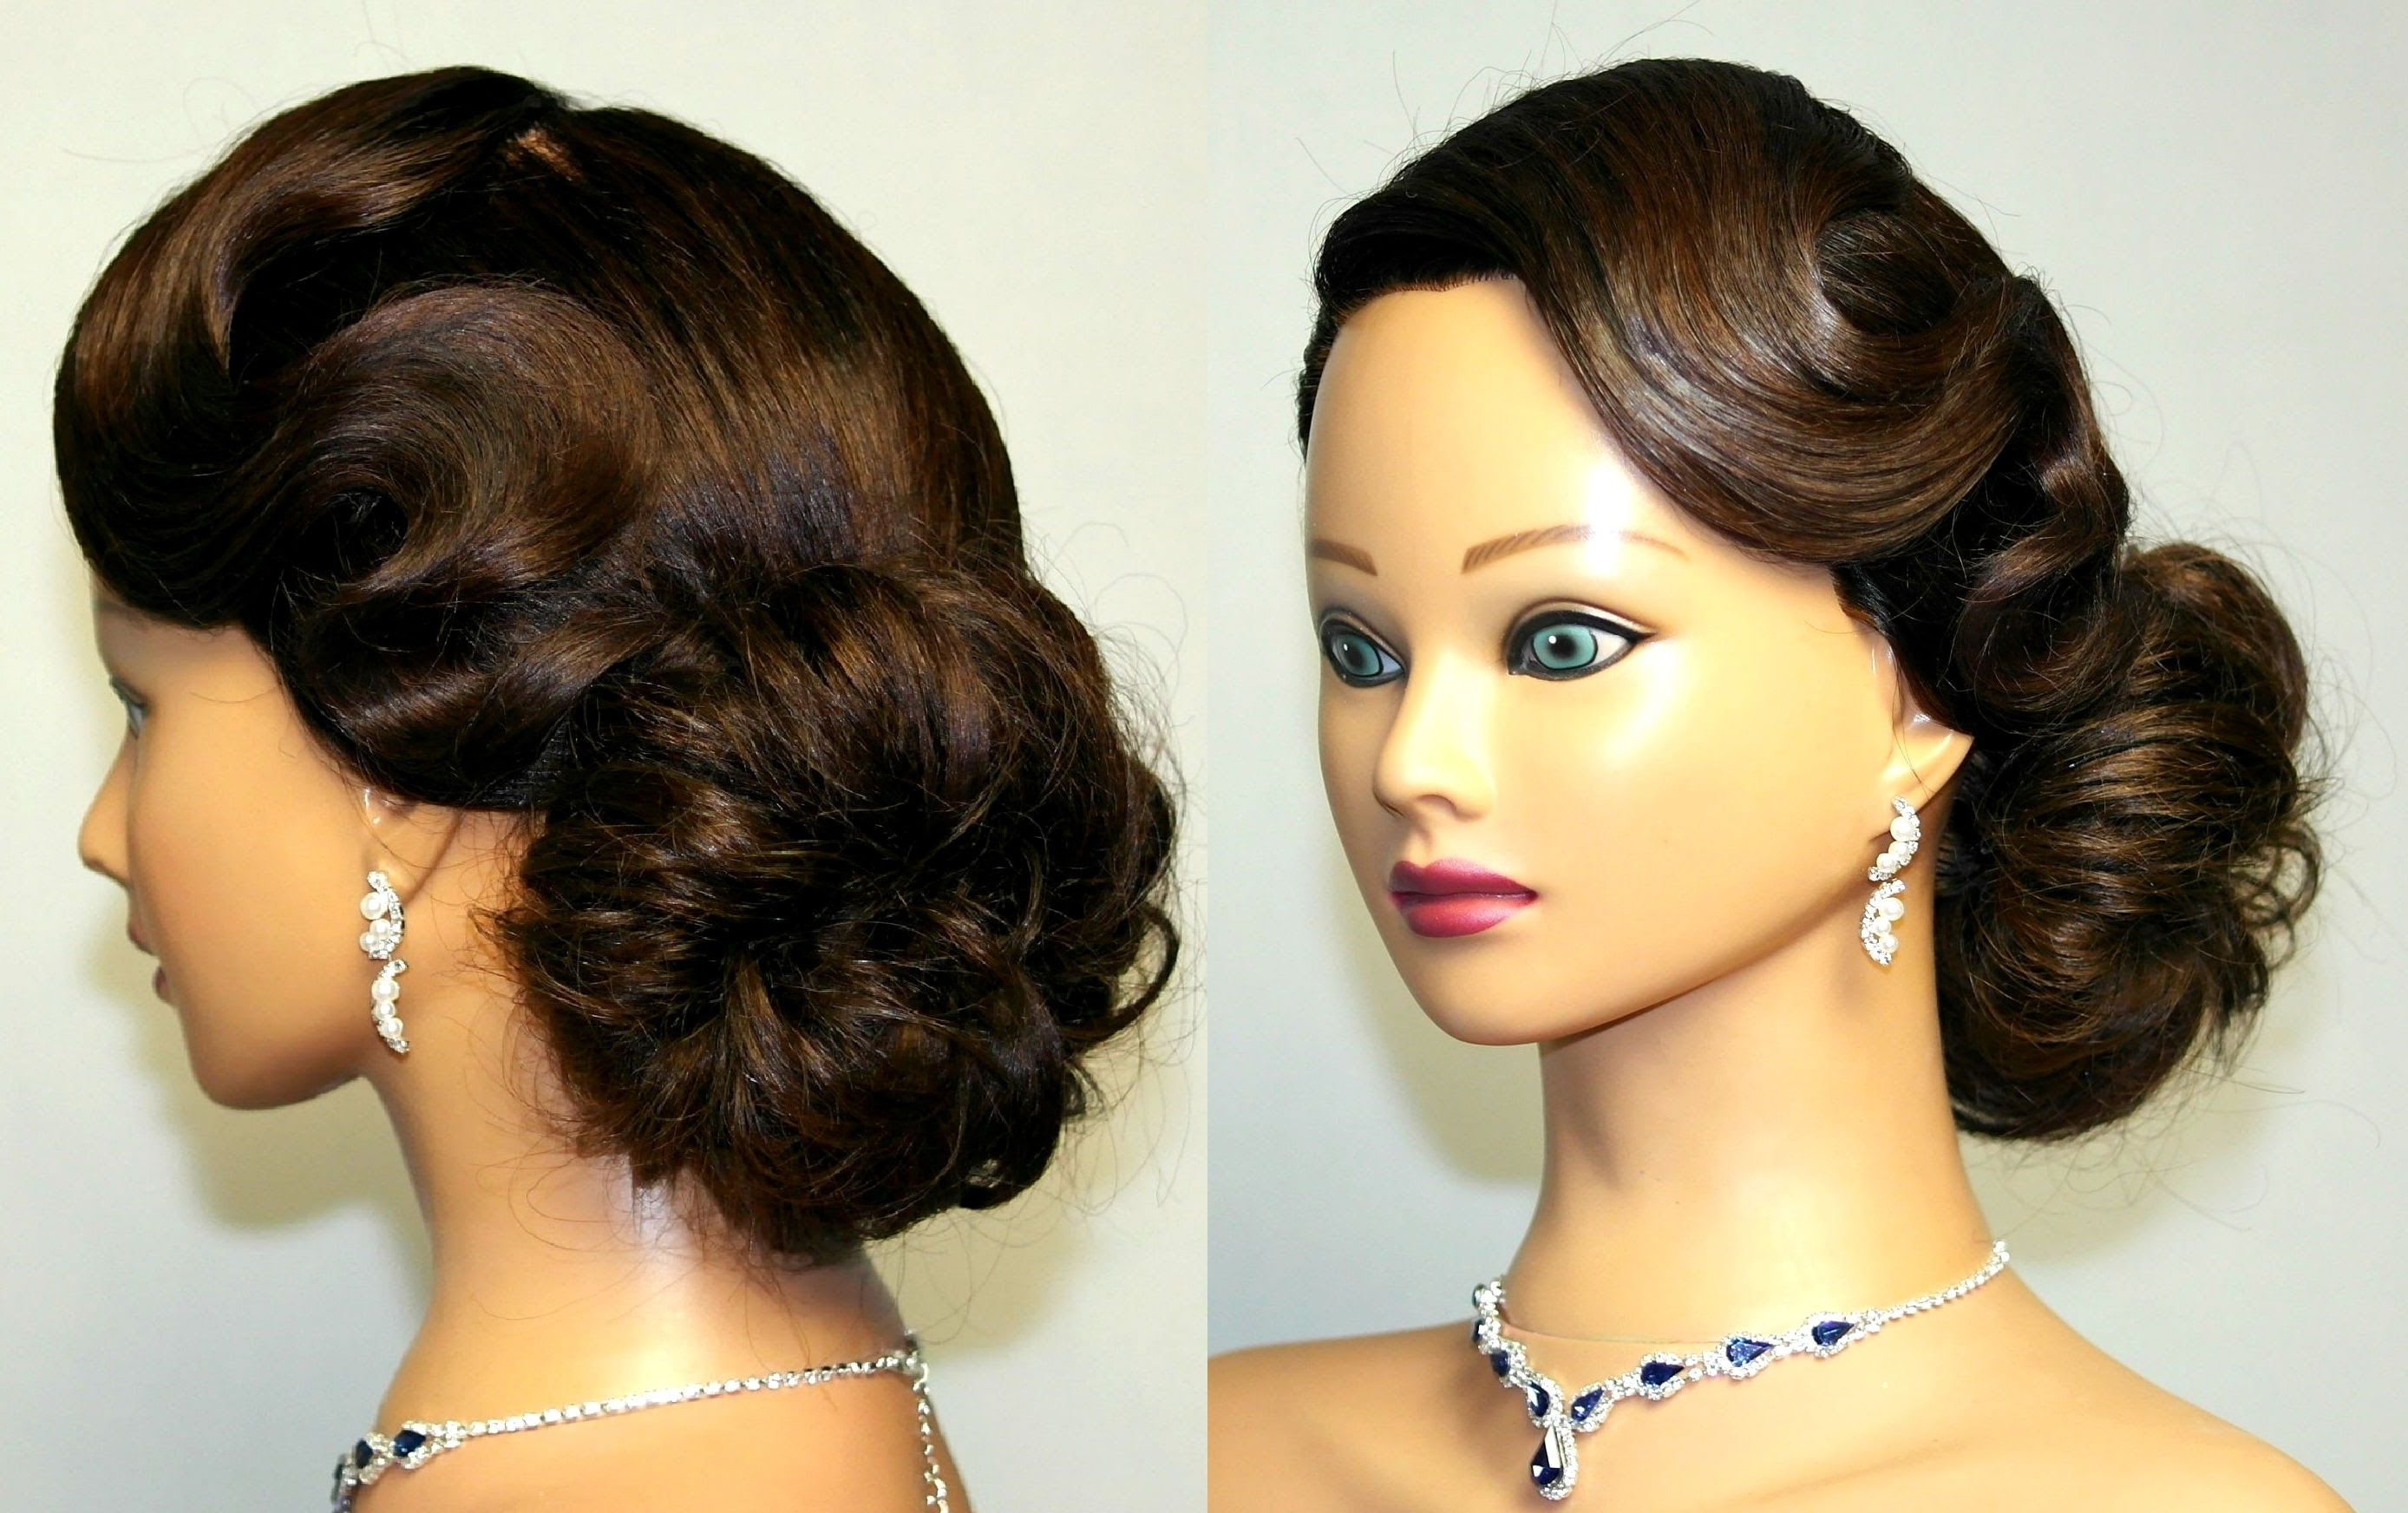 Vintage Updo, Hairstyle For Medium Long Hair (View 10 of 15)